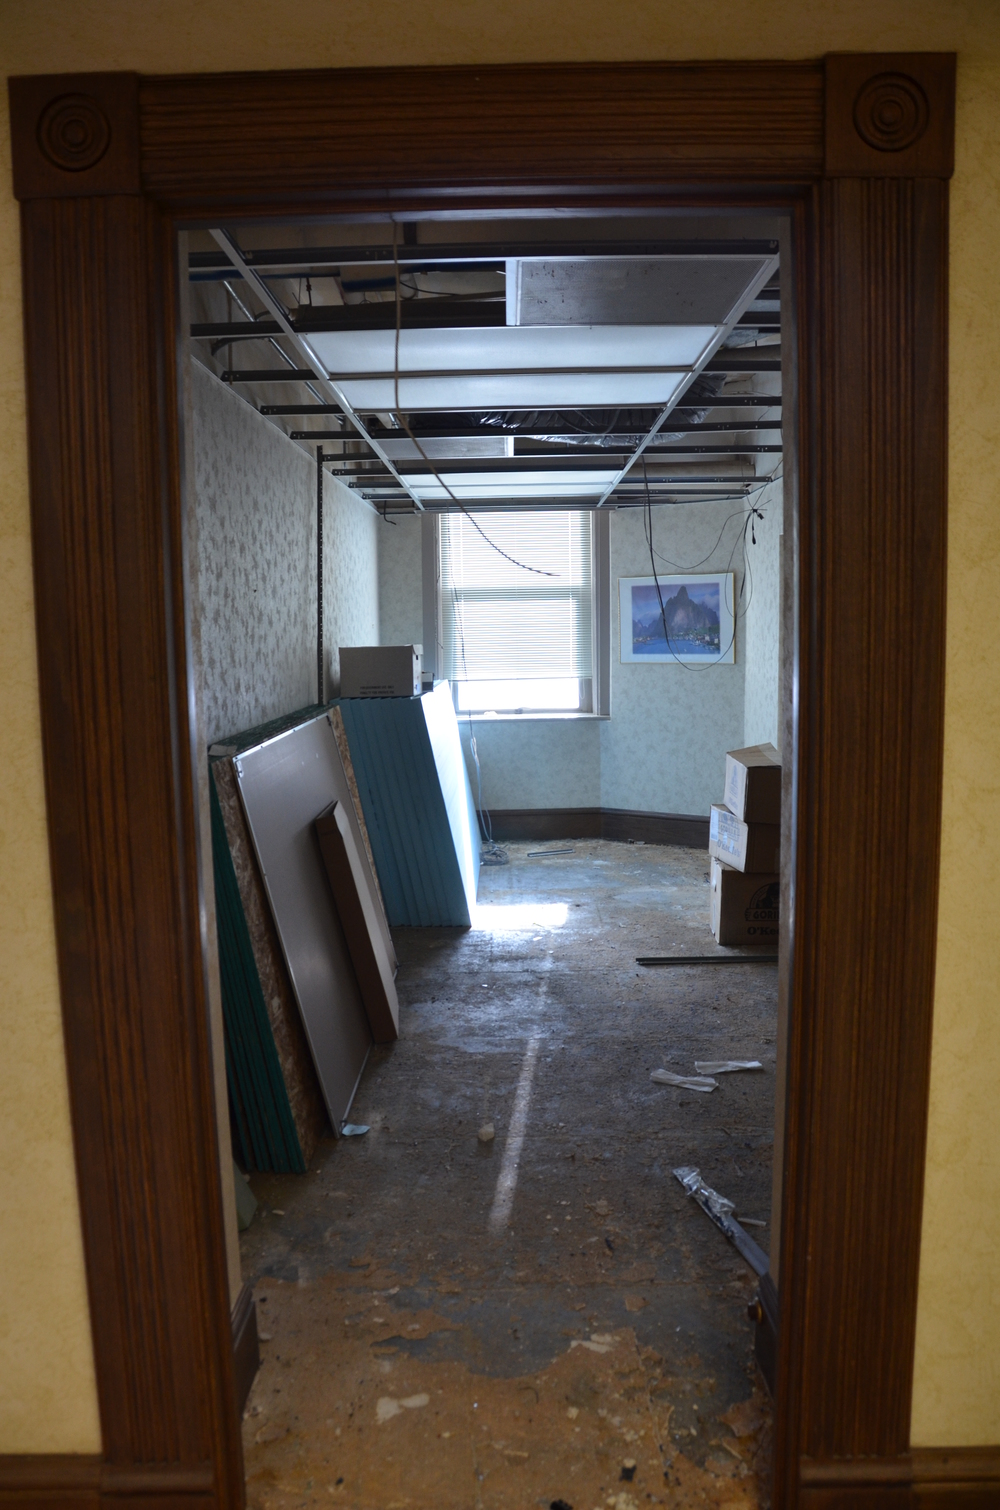 Abatement work in the former Secretary of State's Offices located on the west side on the garden level (basement).